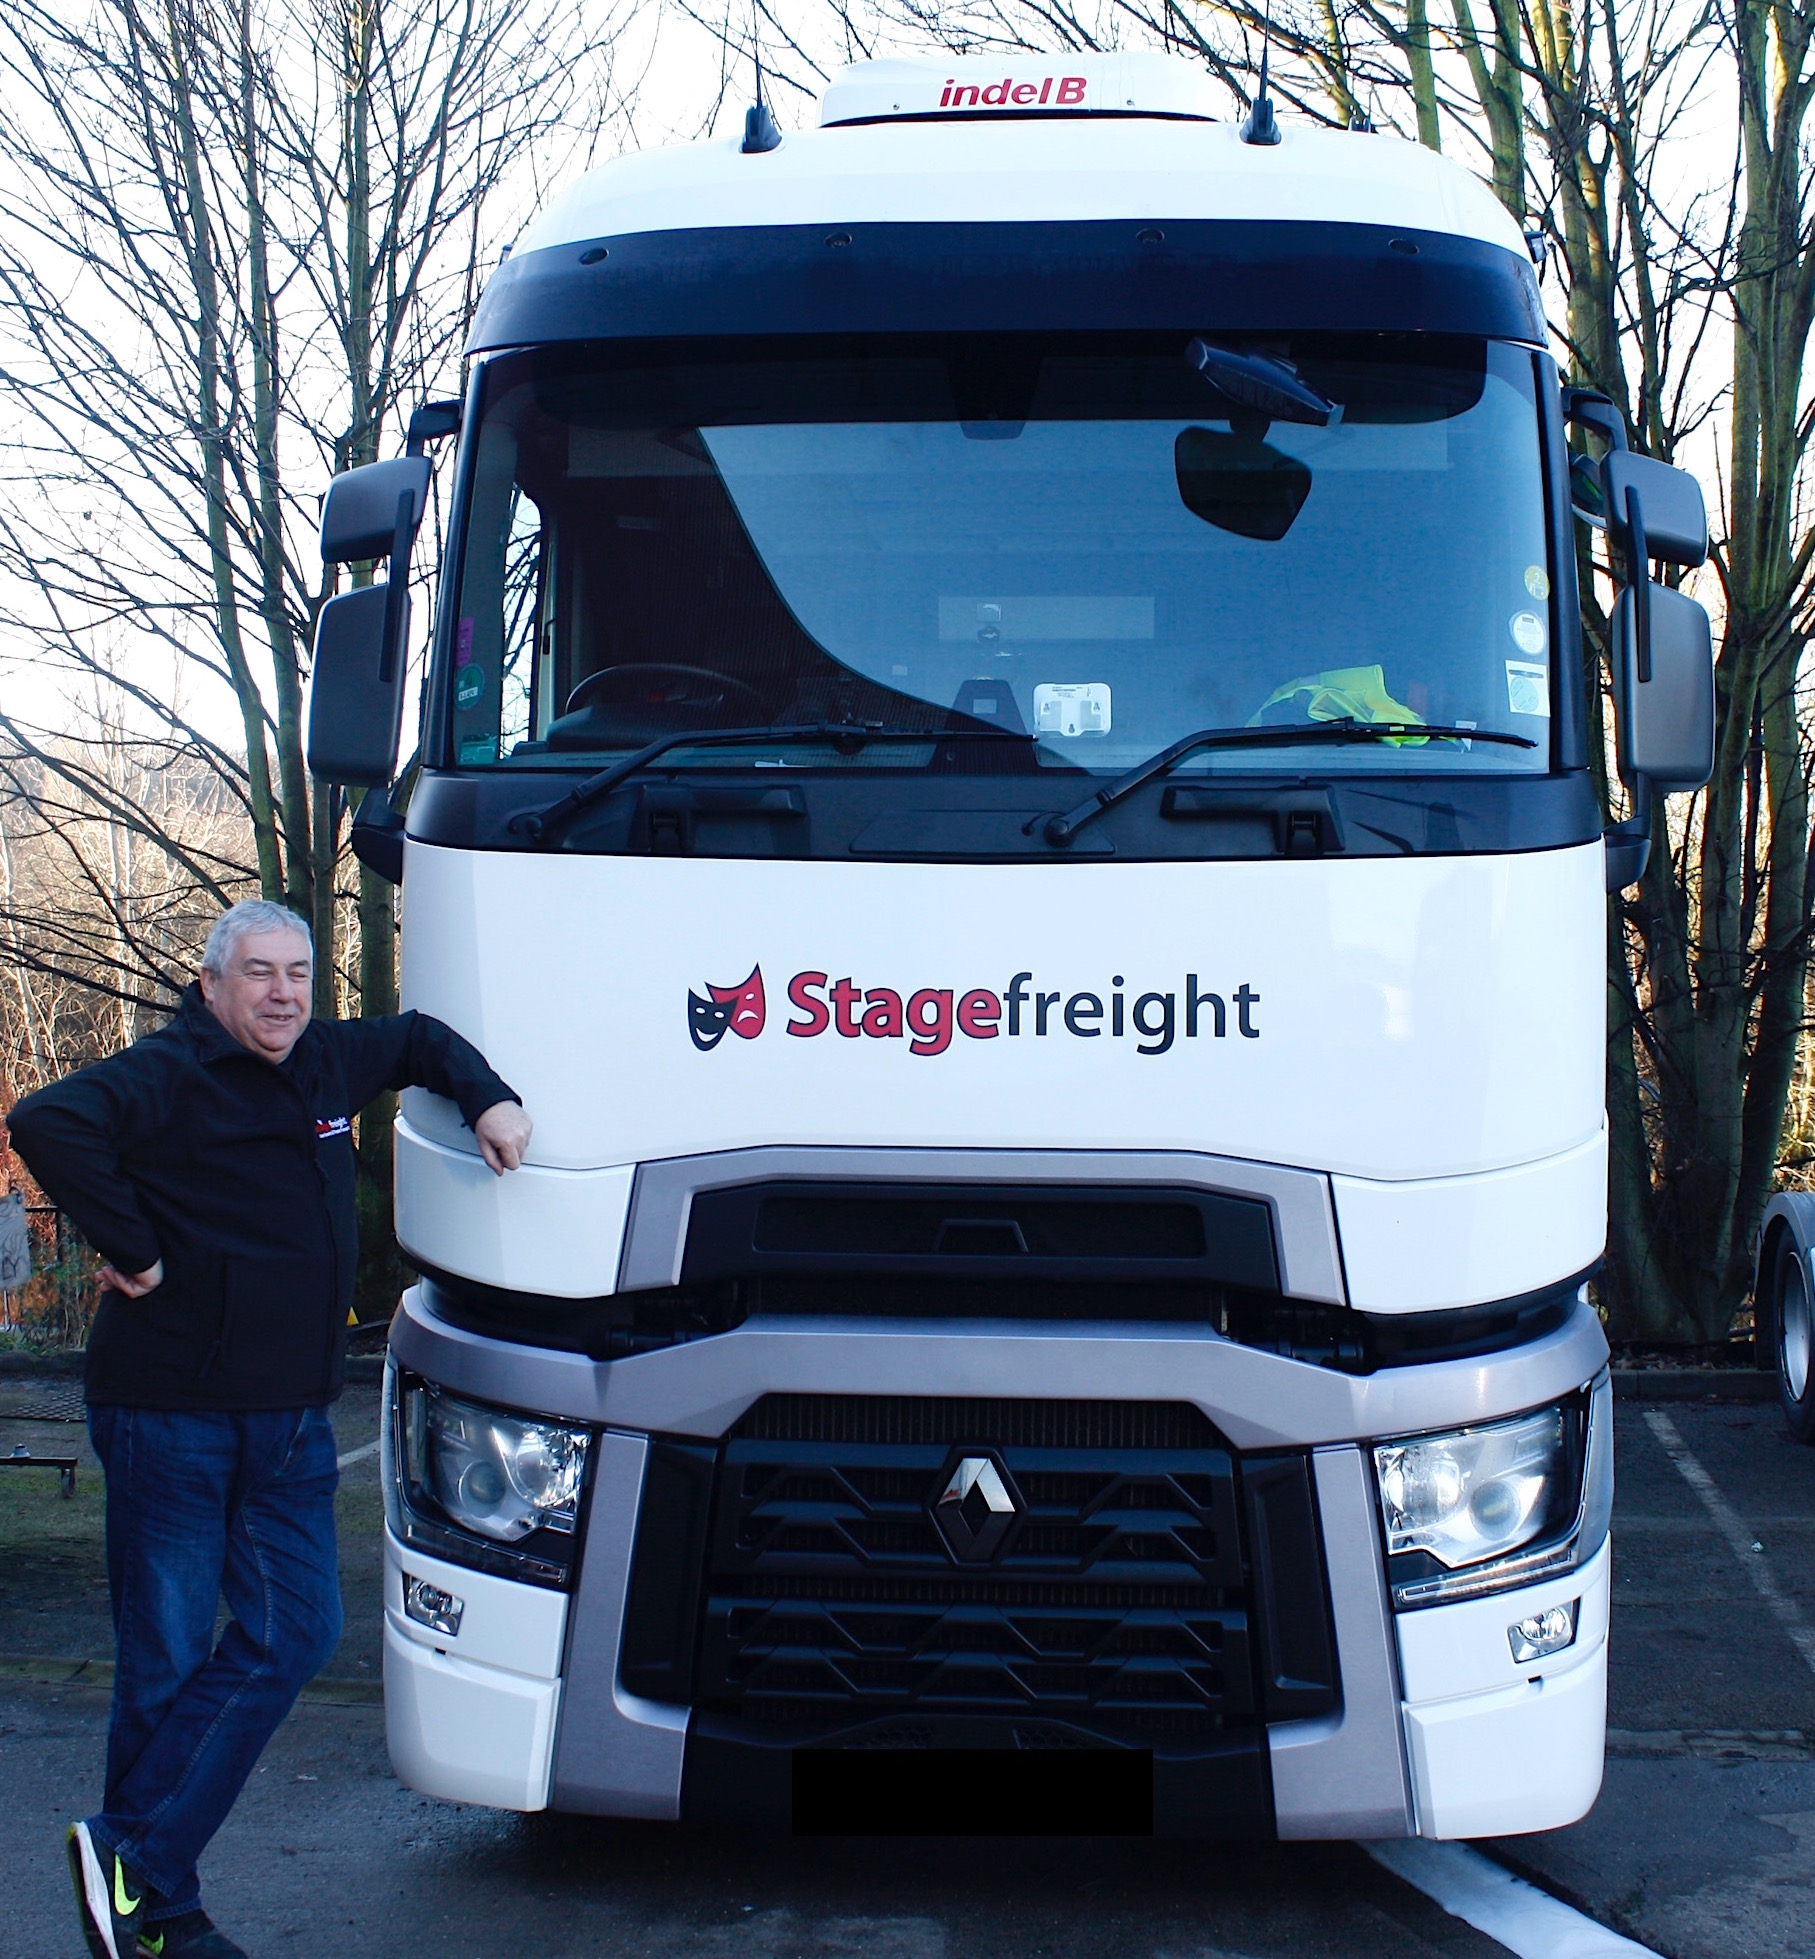 Ross Hemsworth with his Stagefreight Truck Renault T smiling